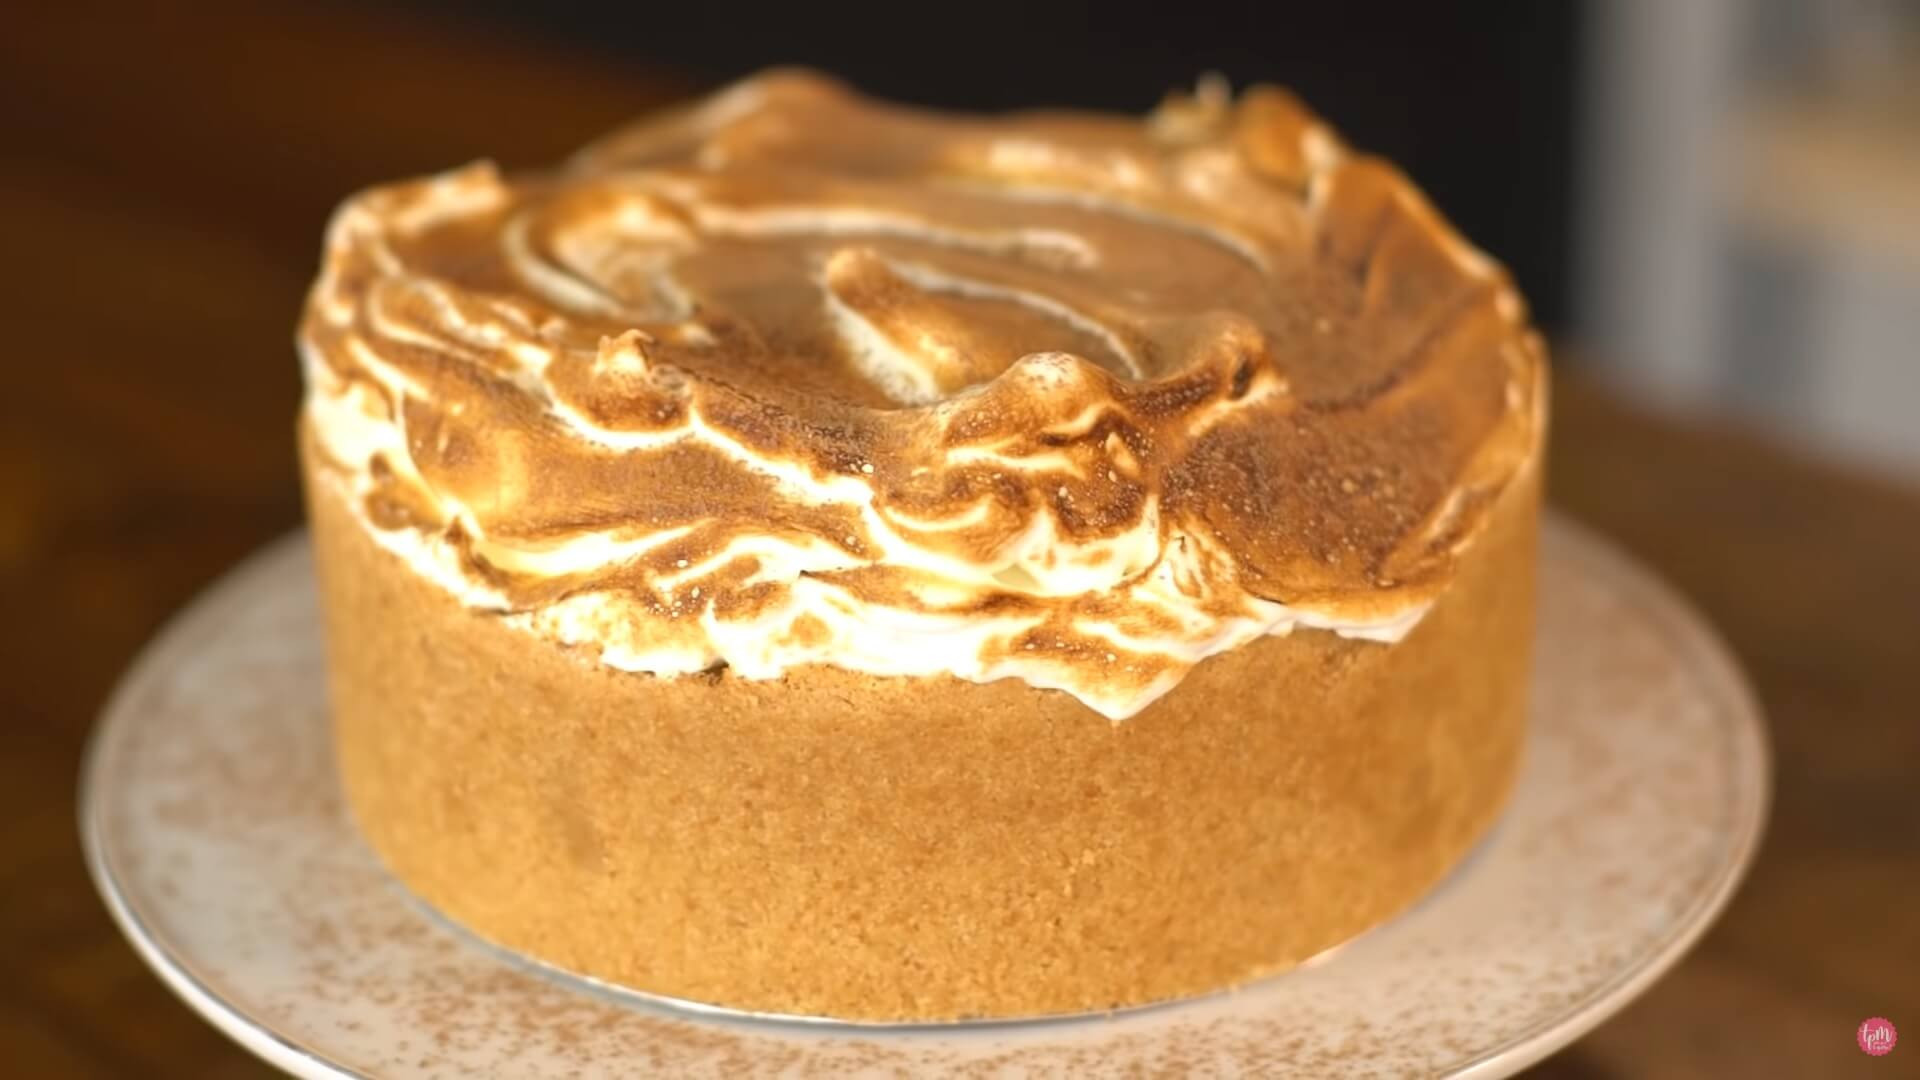 Imagem: Torta de chocolate e merengue da Ju Ferraz, do TPM.